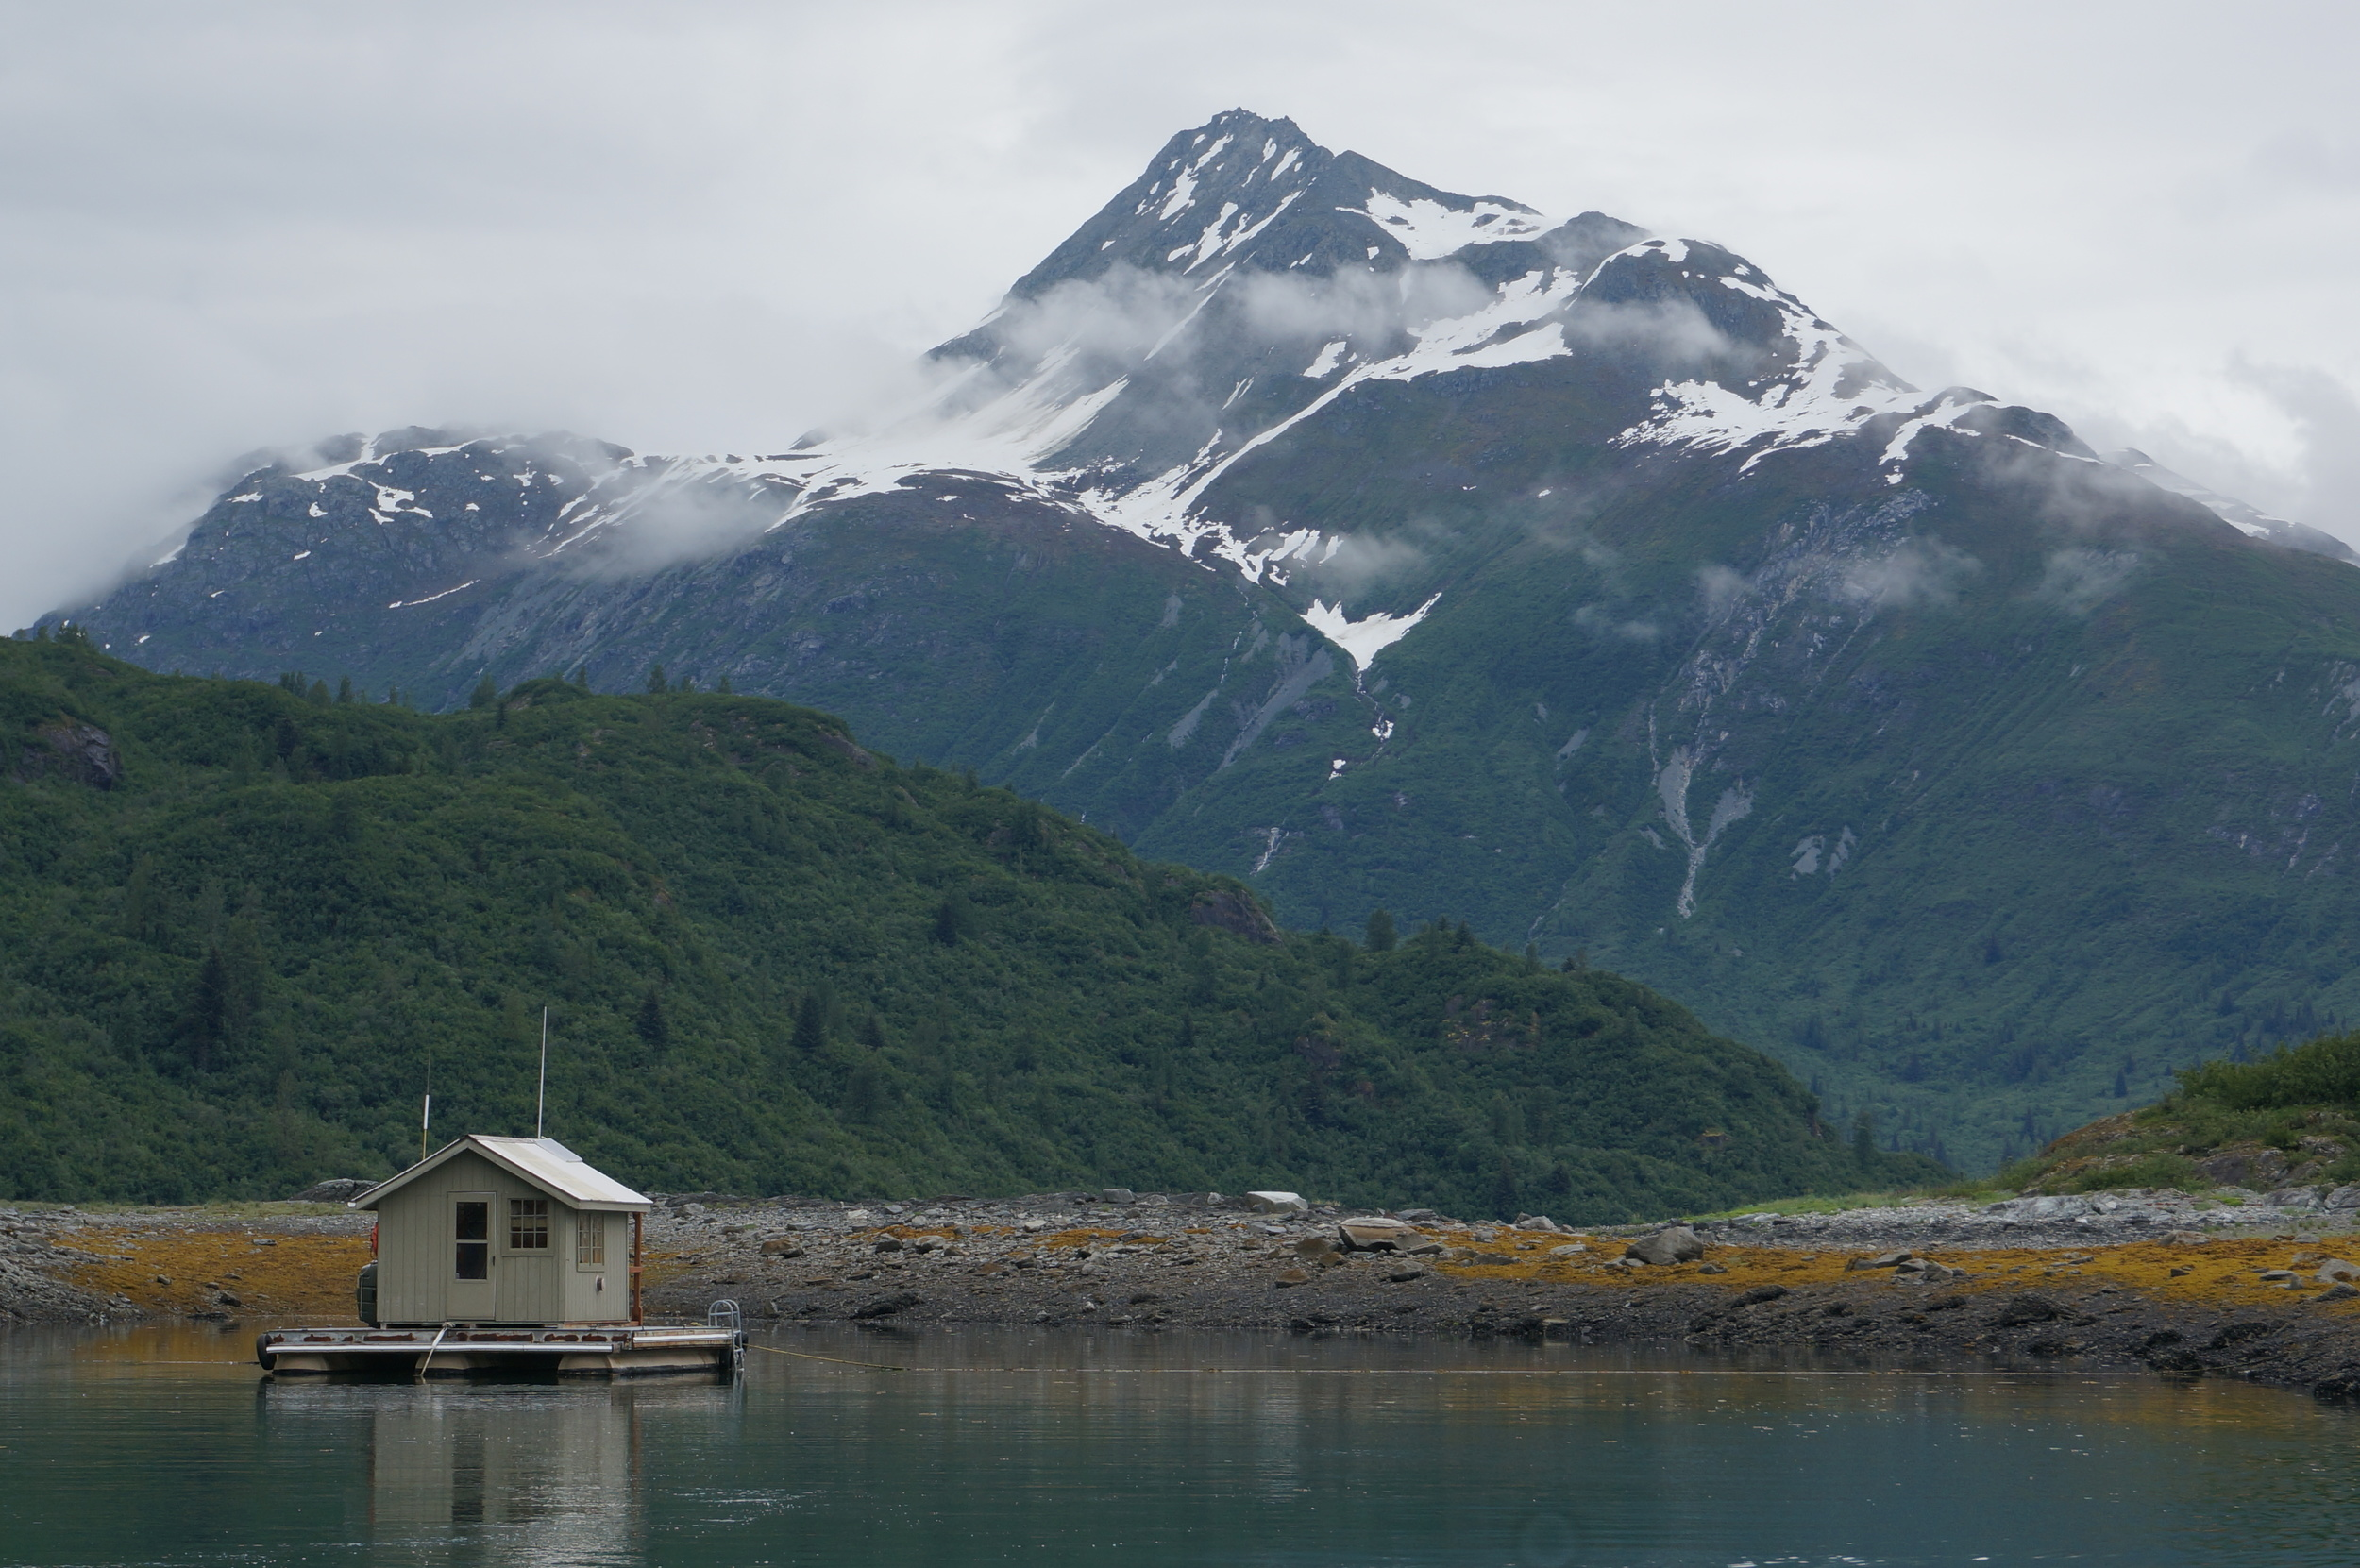 Leaving floathouse for the camping portion in Hugh Miller Inlet